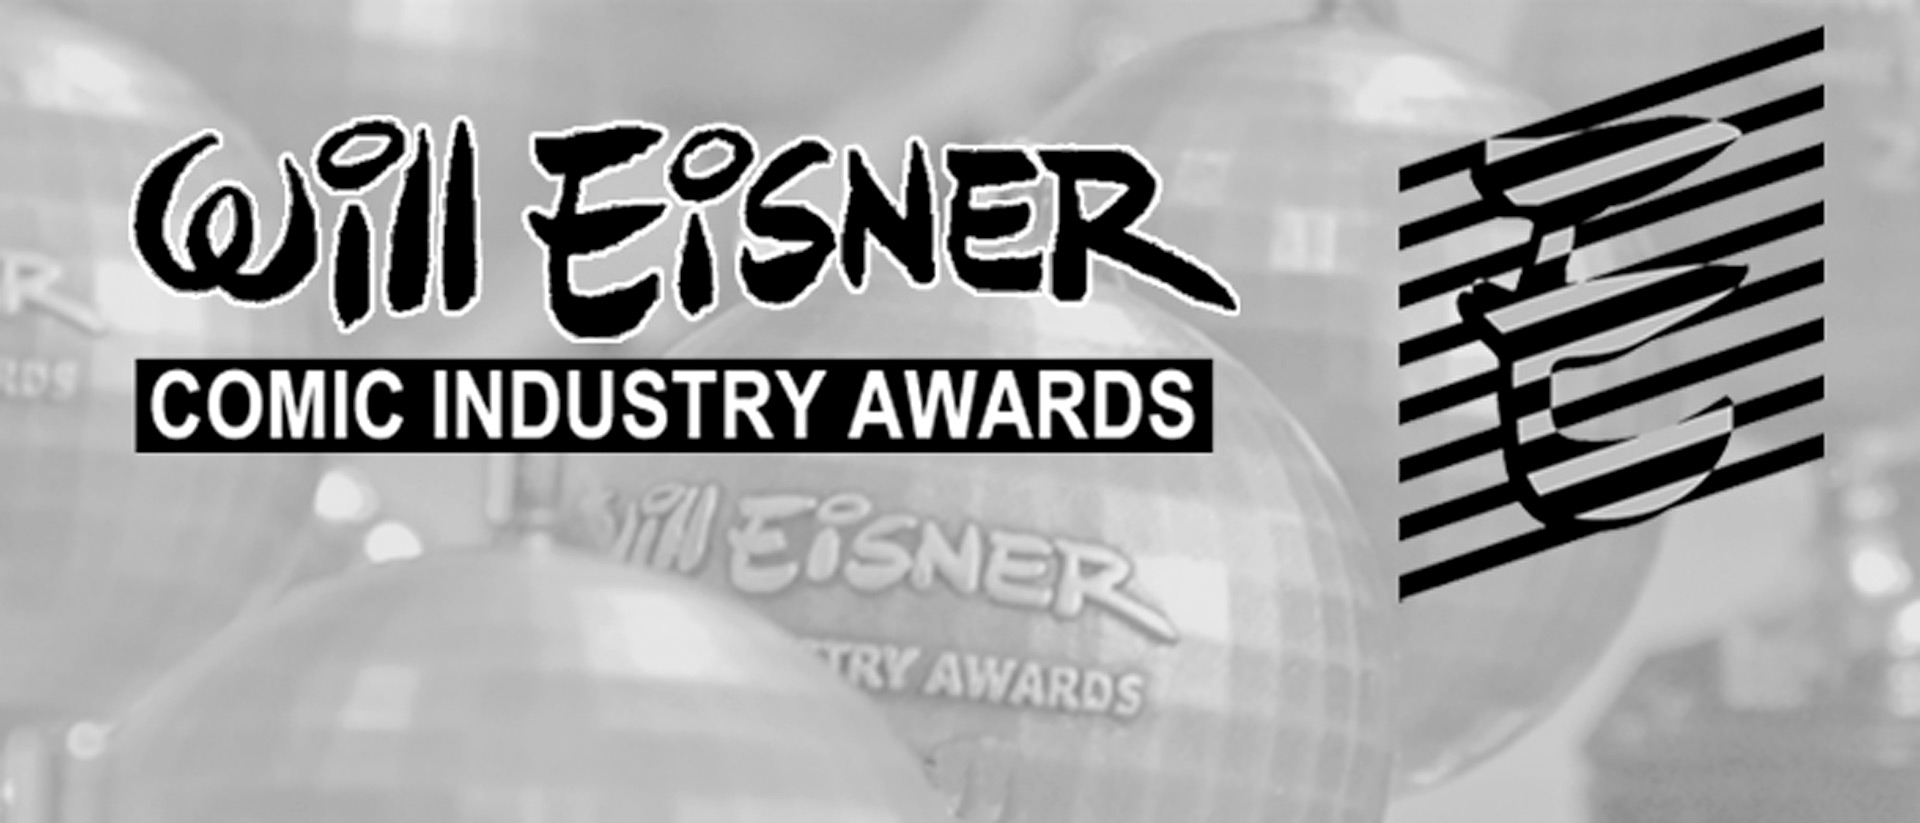 Will Eisner Comic Industry Awards 2014